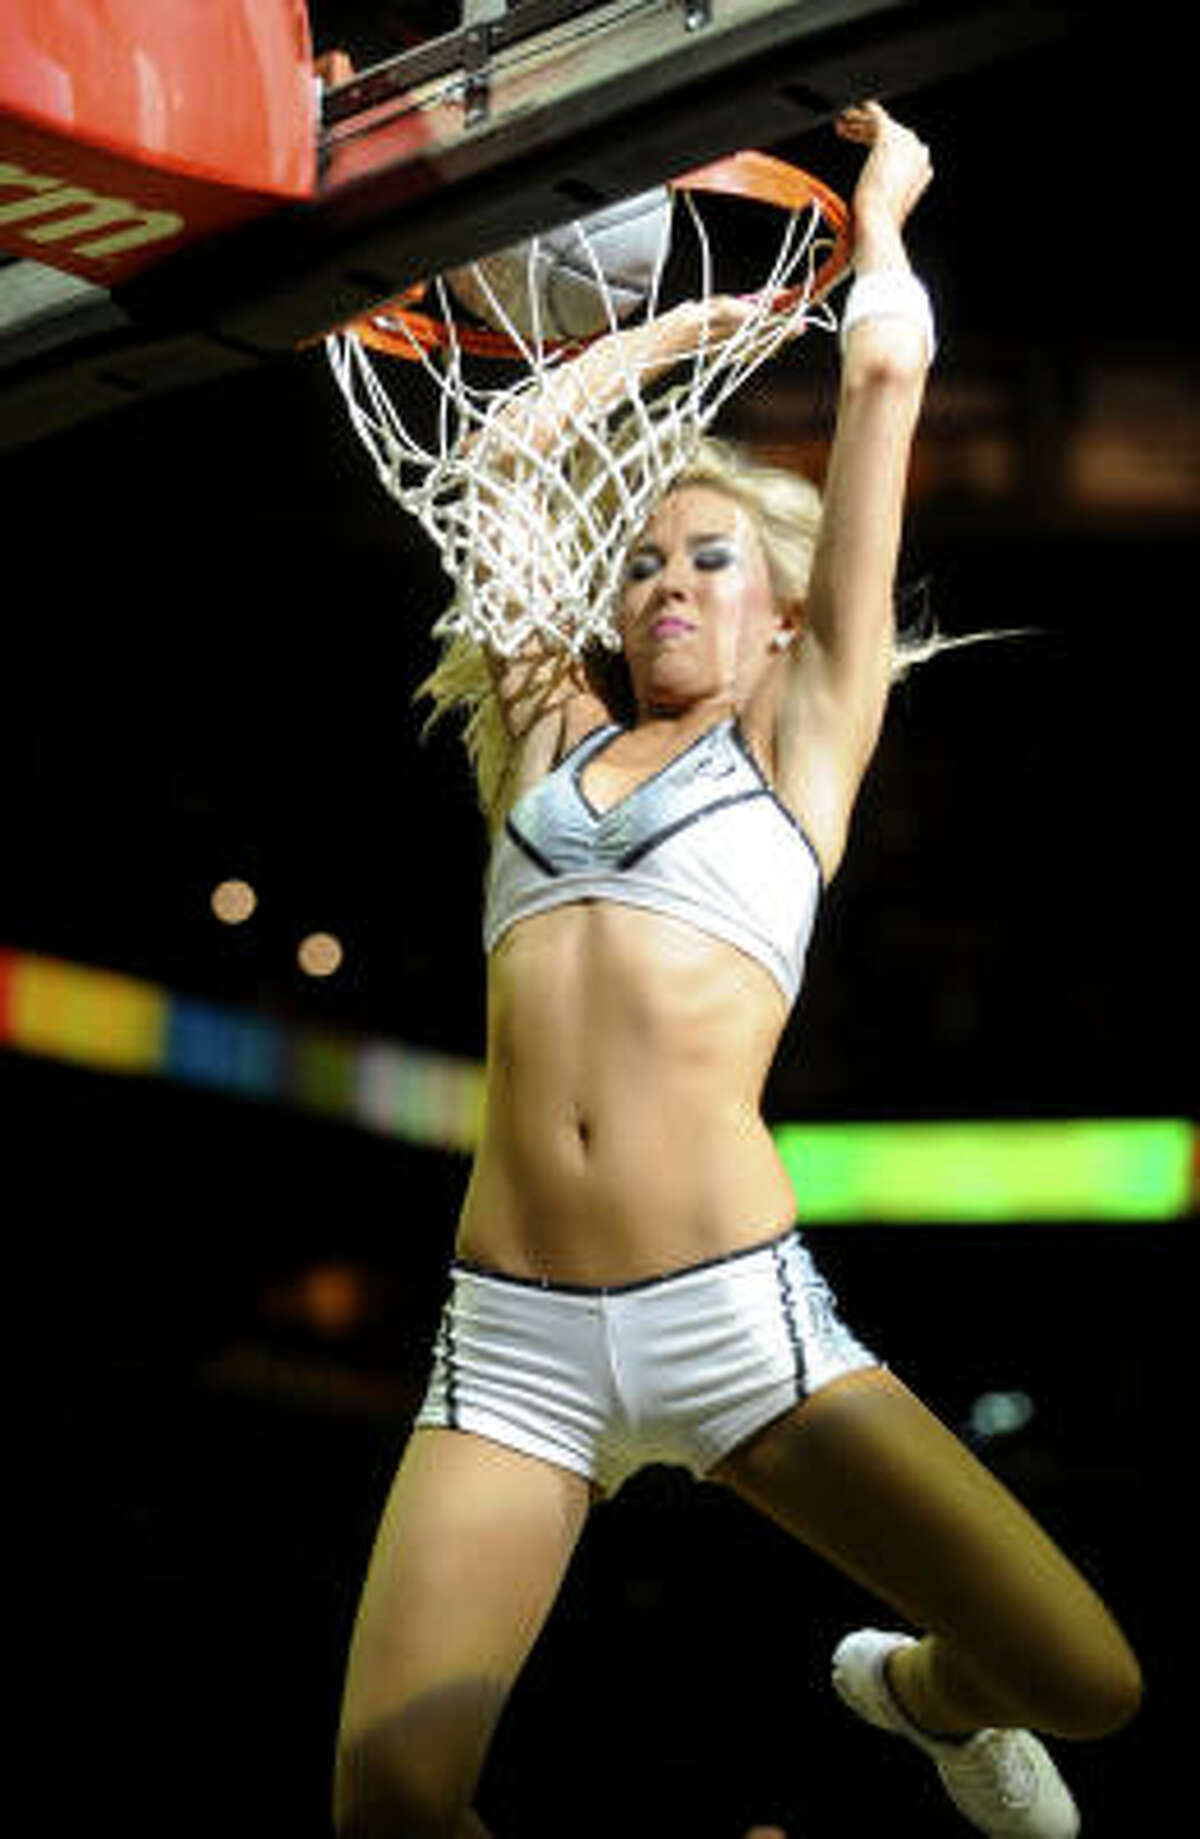 A San Antonio Spurs Silver Dancer dunks during a timeout at the AT&T Center on Wednesday, March 31, as the Spurs take on the Rockets.